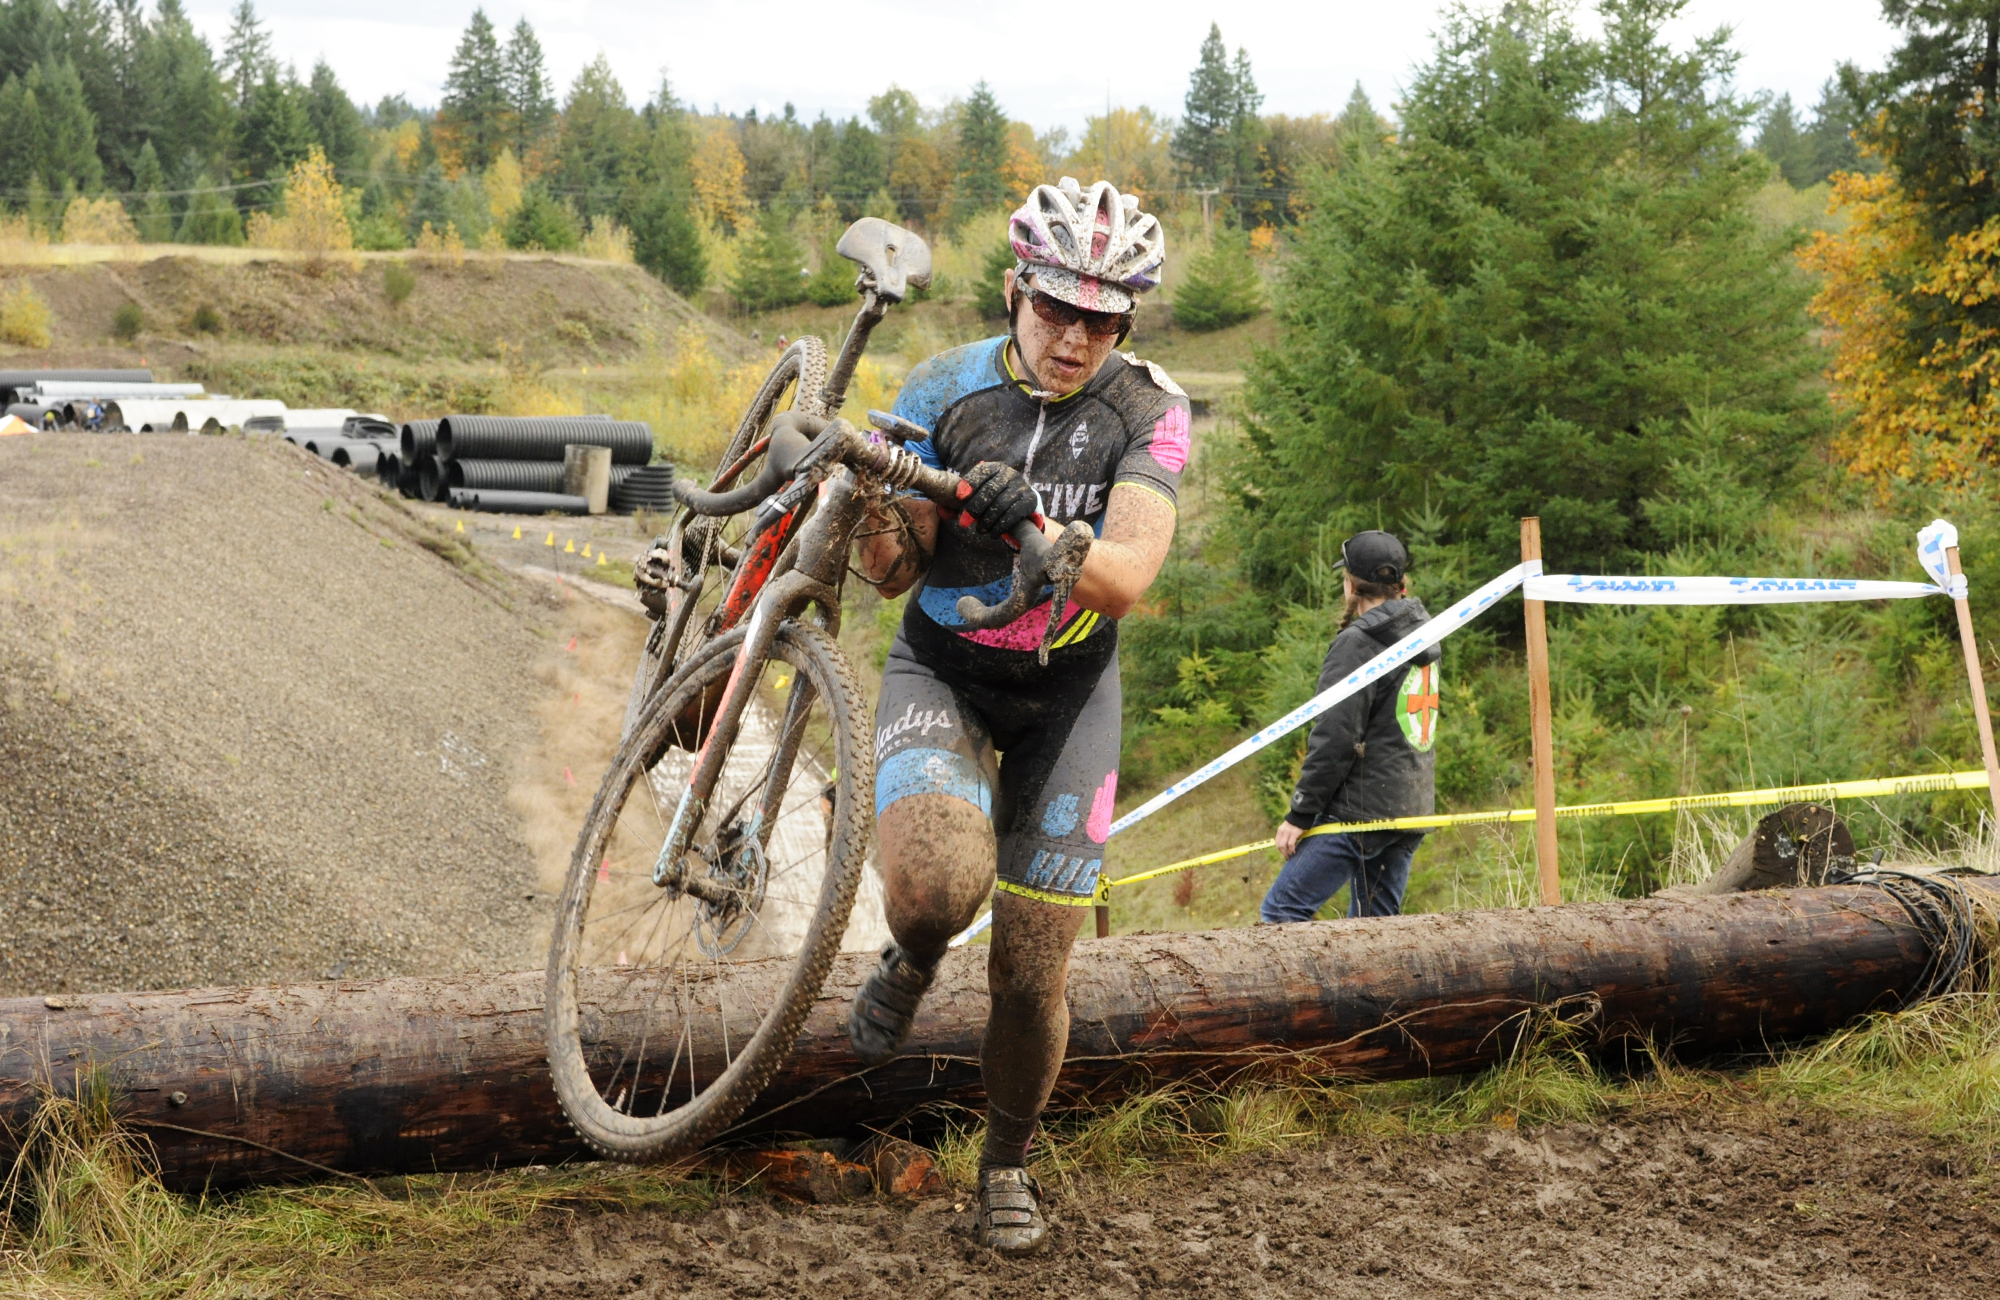 SellwoodCycle_CCBP_52